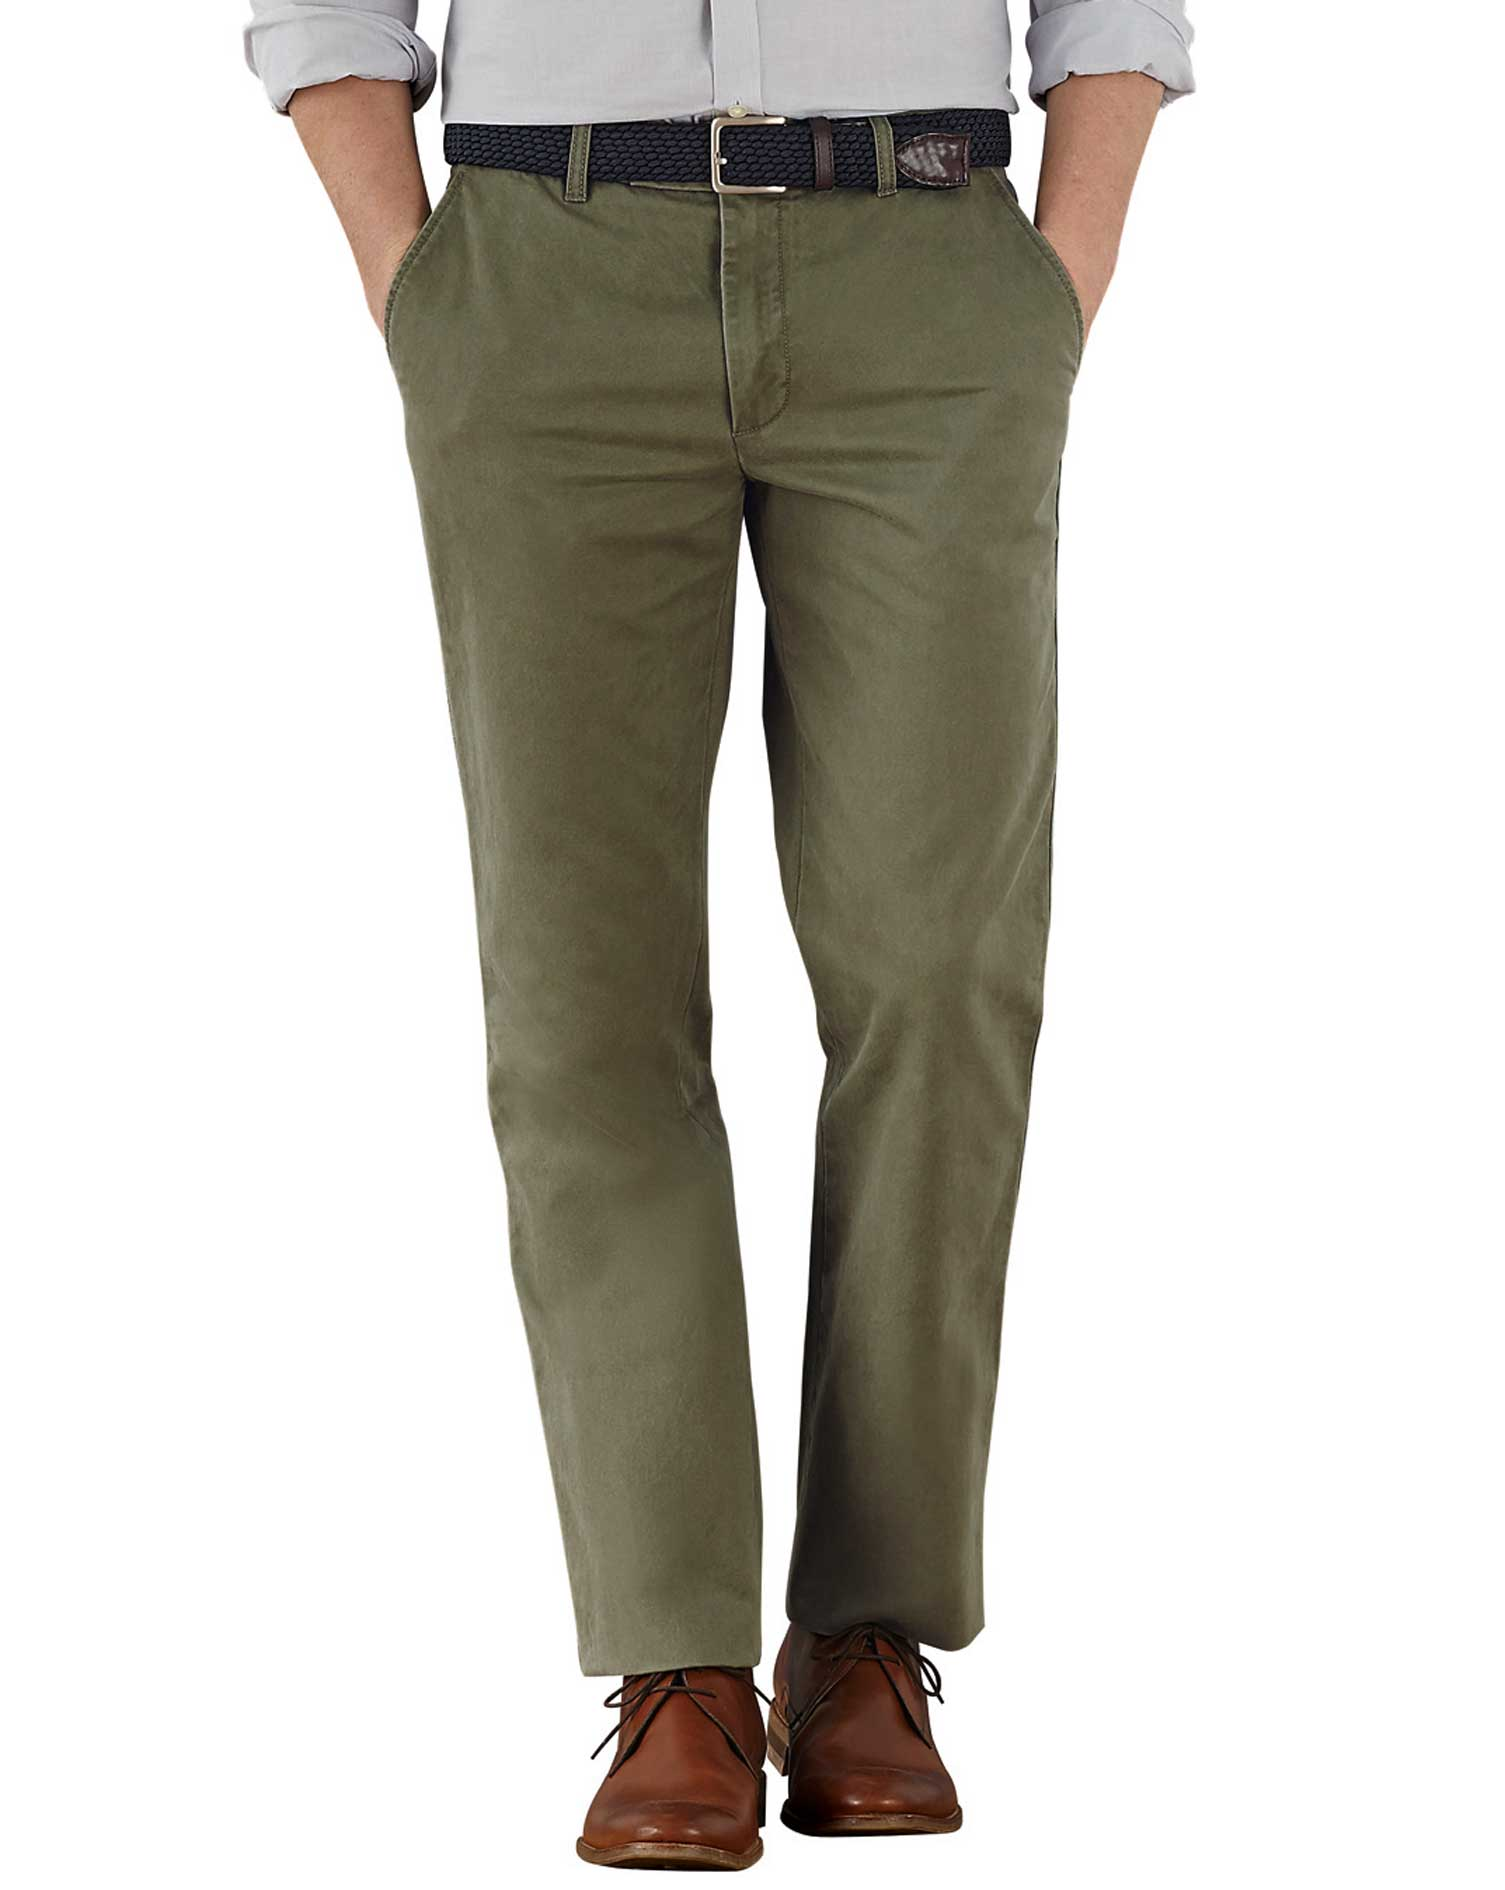 Olive Slim Fit Flat Front Cotton Chino Trousers Size W42 L29 by Charles Tyrwhitt